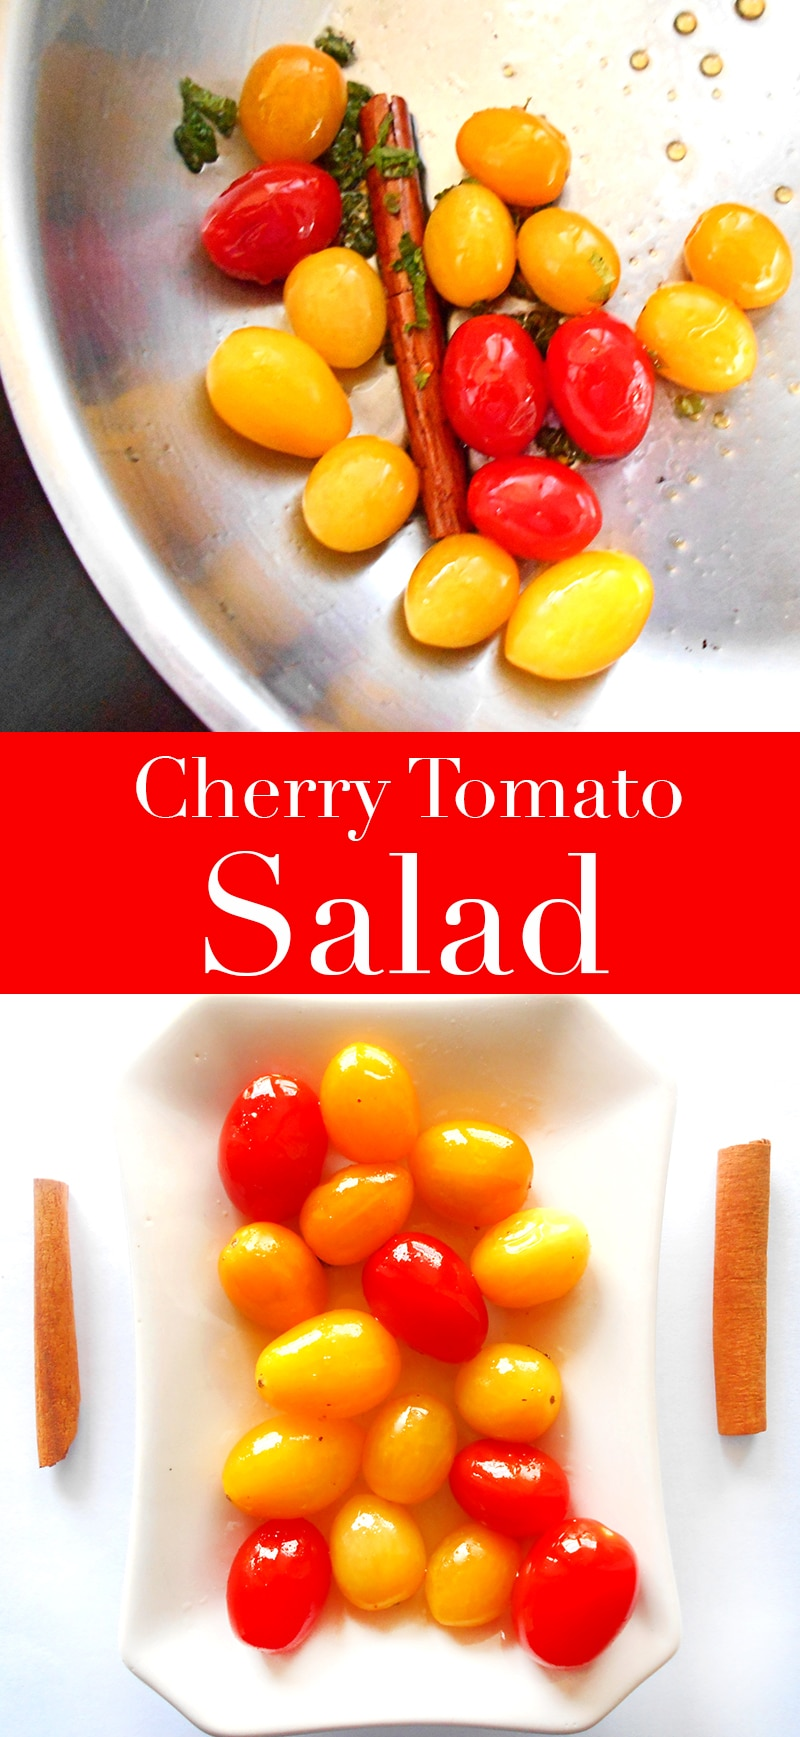 This quick side of cherry tomato and grape tomato side is a quick side dish that works with any recipe. Made in 5 minutes and very delicious